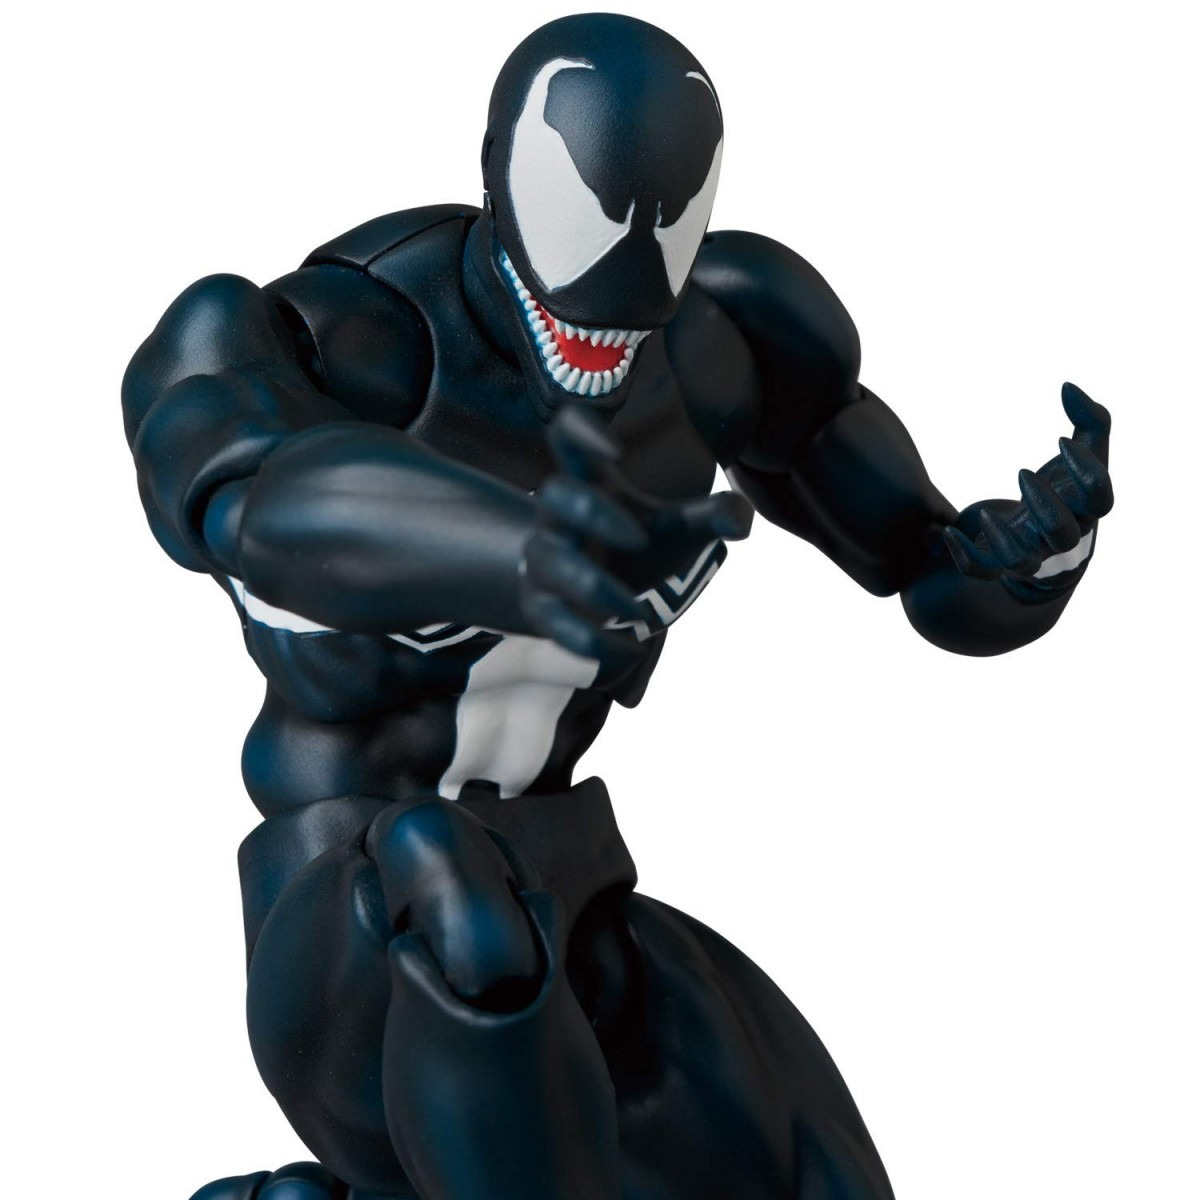 MAFEX Venom Comic Version Action Figure